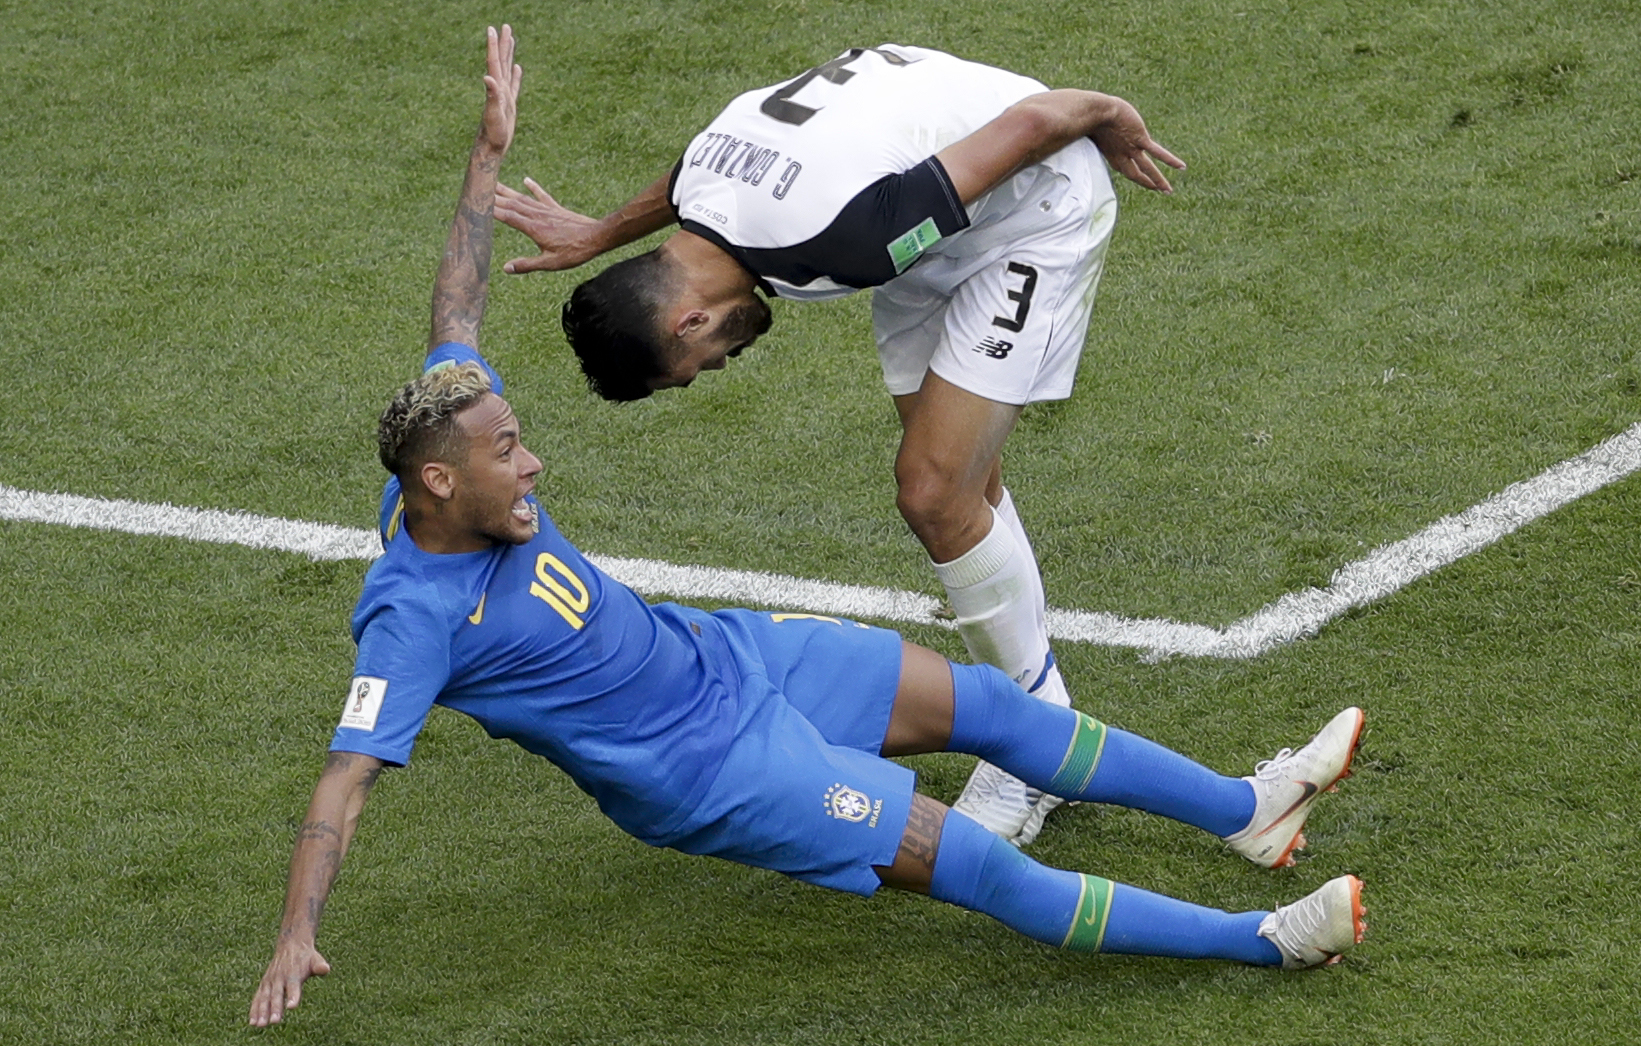 Neymar Destroyed By Fans For His Ridiculous Diving In The World Cup neymarPA1